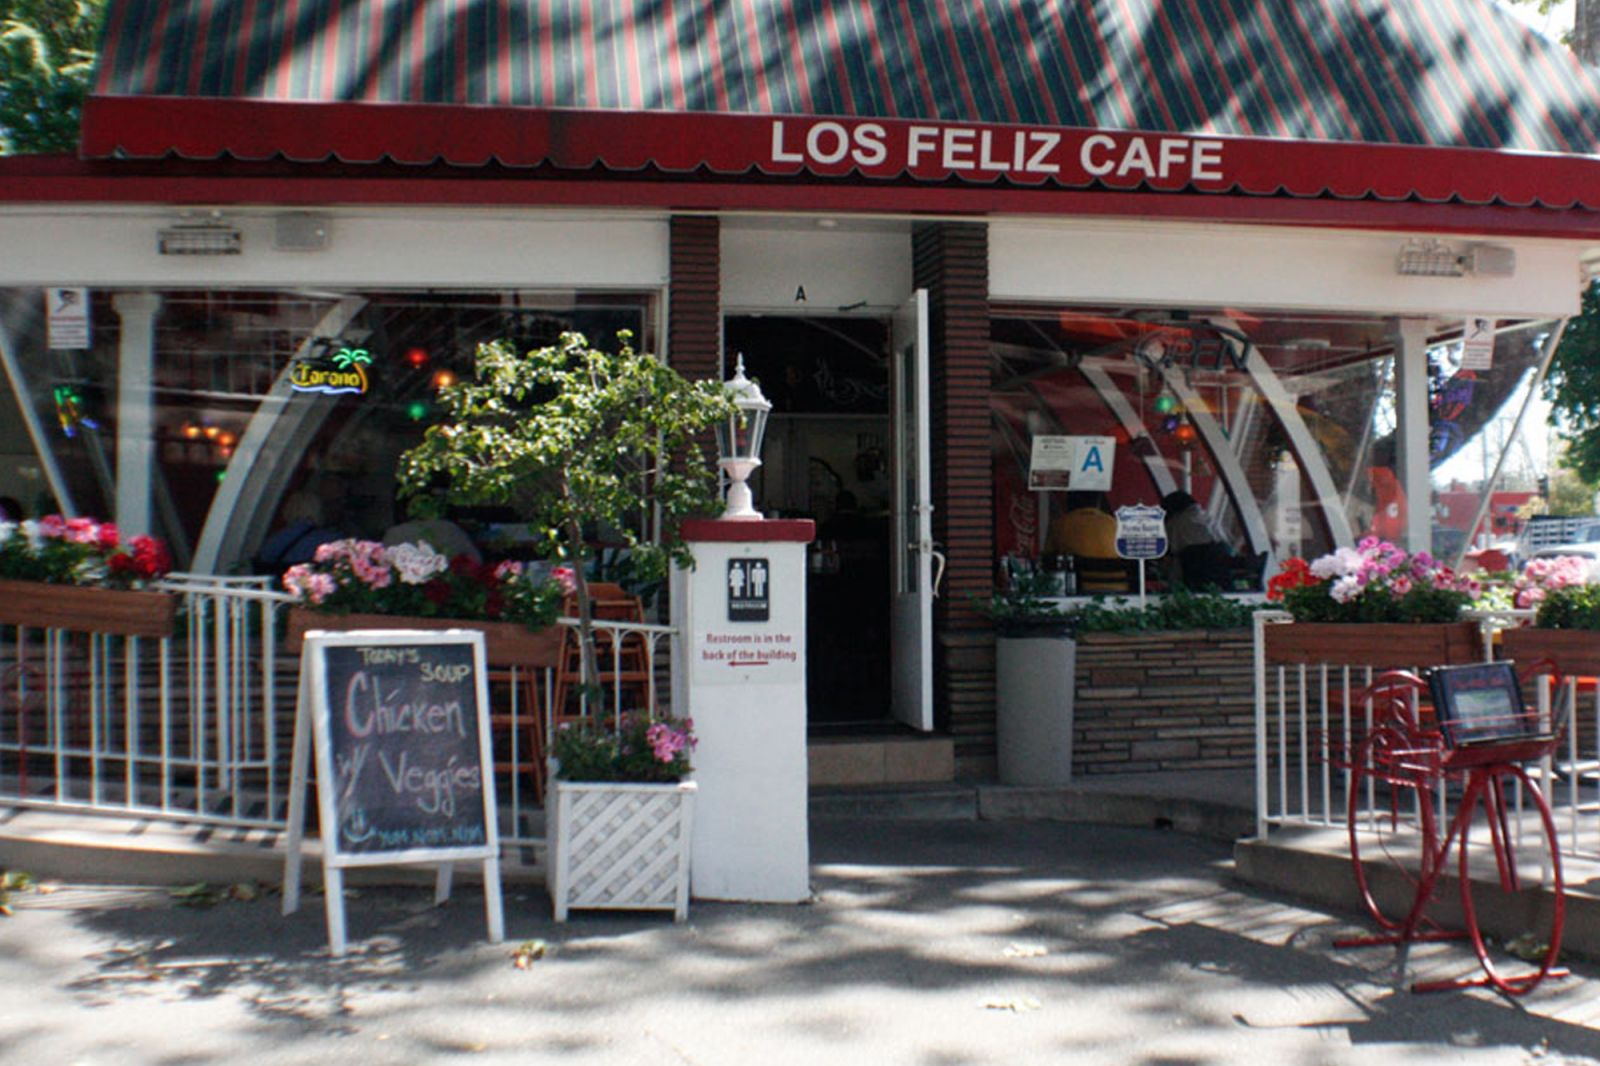 Los Feliz Cafe at Los Feliz 3-Par Golf Course